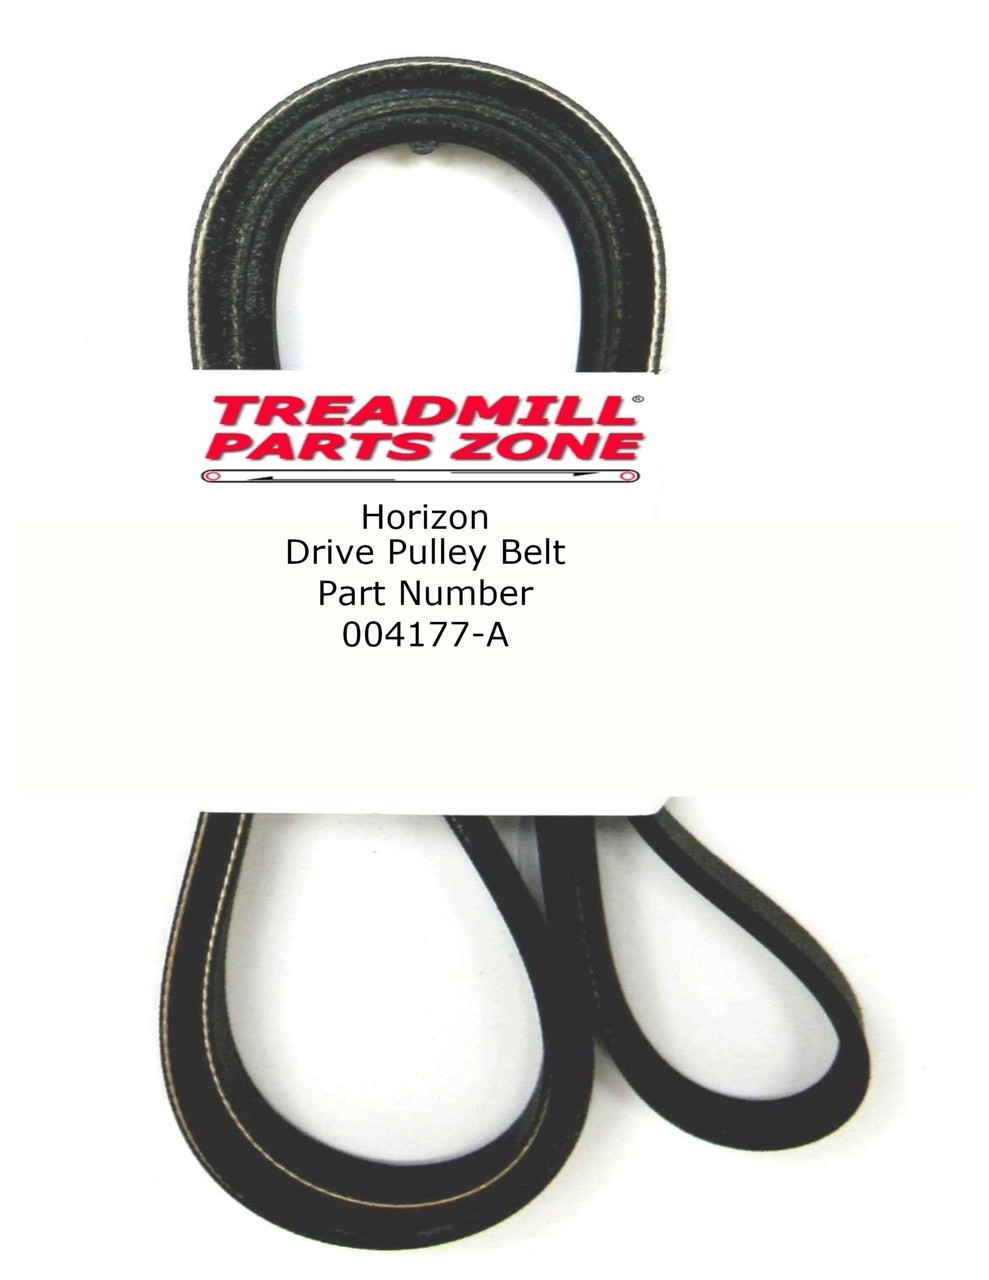 Horizon Elliptical Model EX65 EP133 Drive Pulley Belt Part Number 004177-A